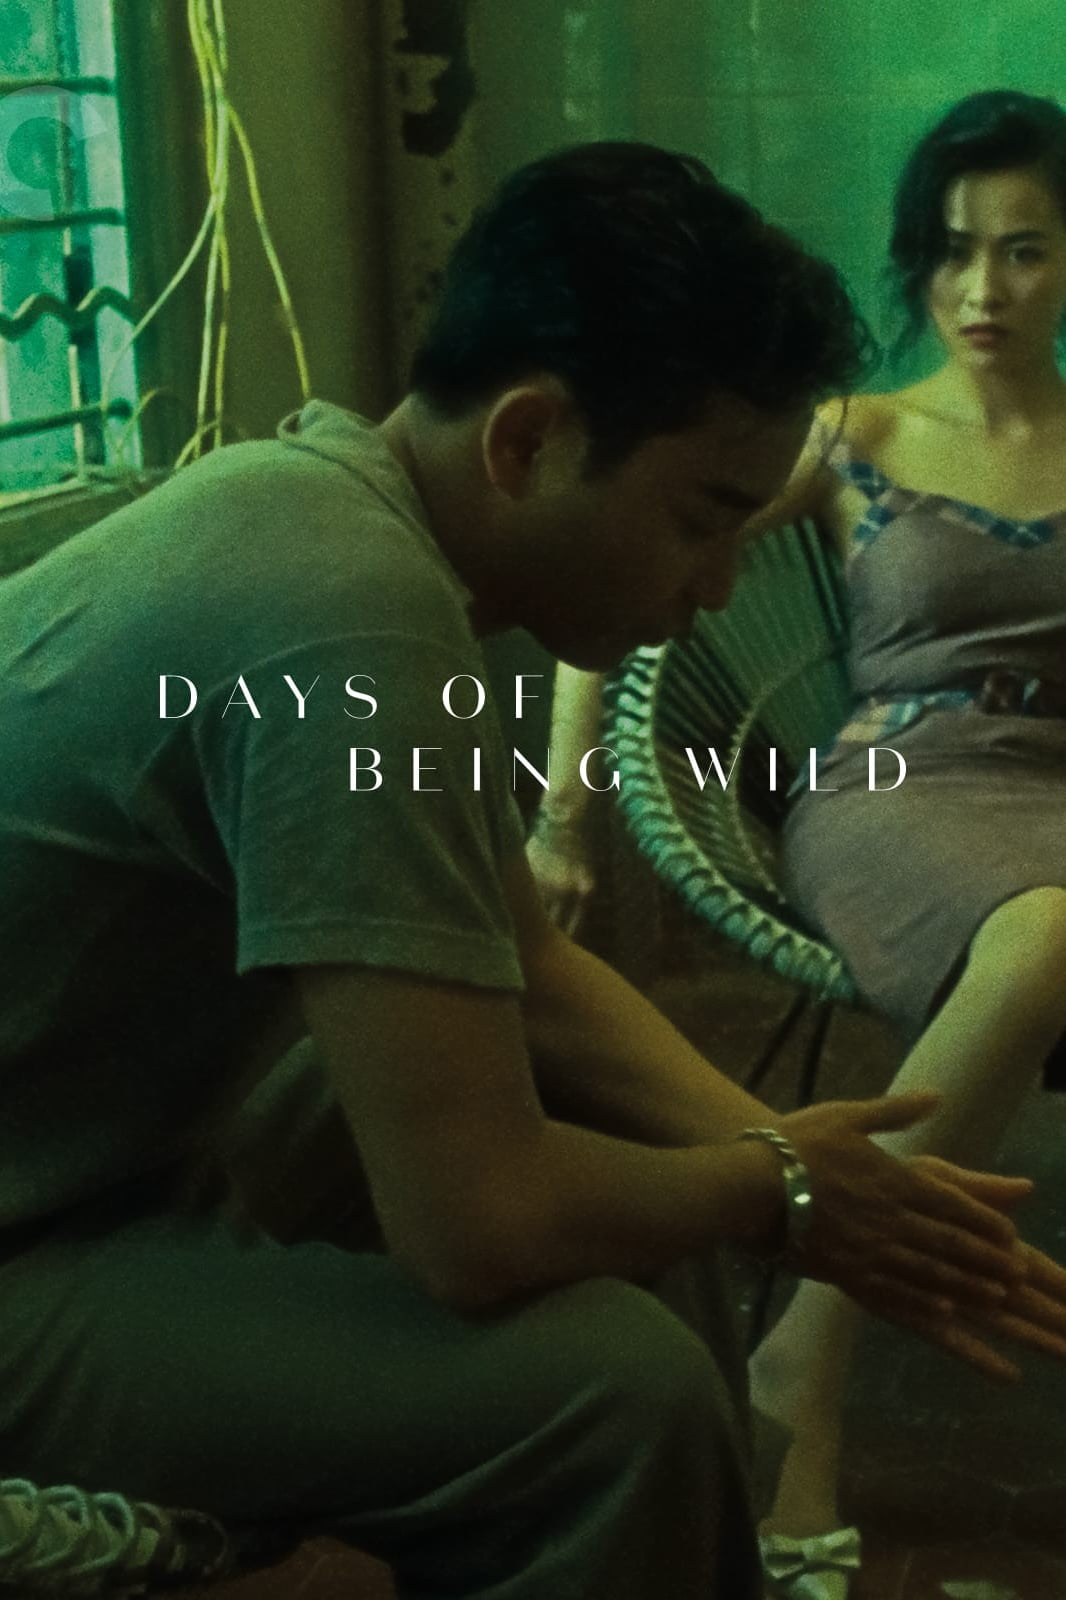 Poster for Days of Being Wild